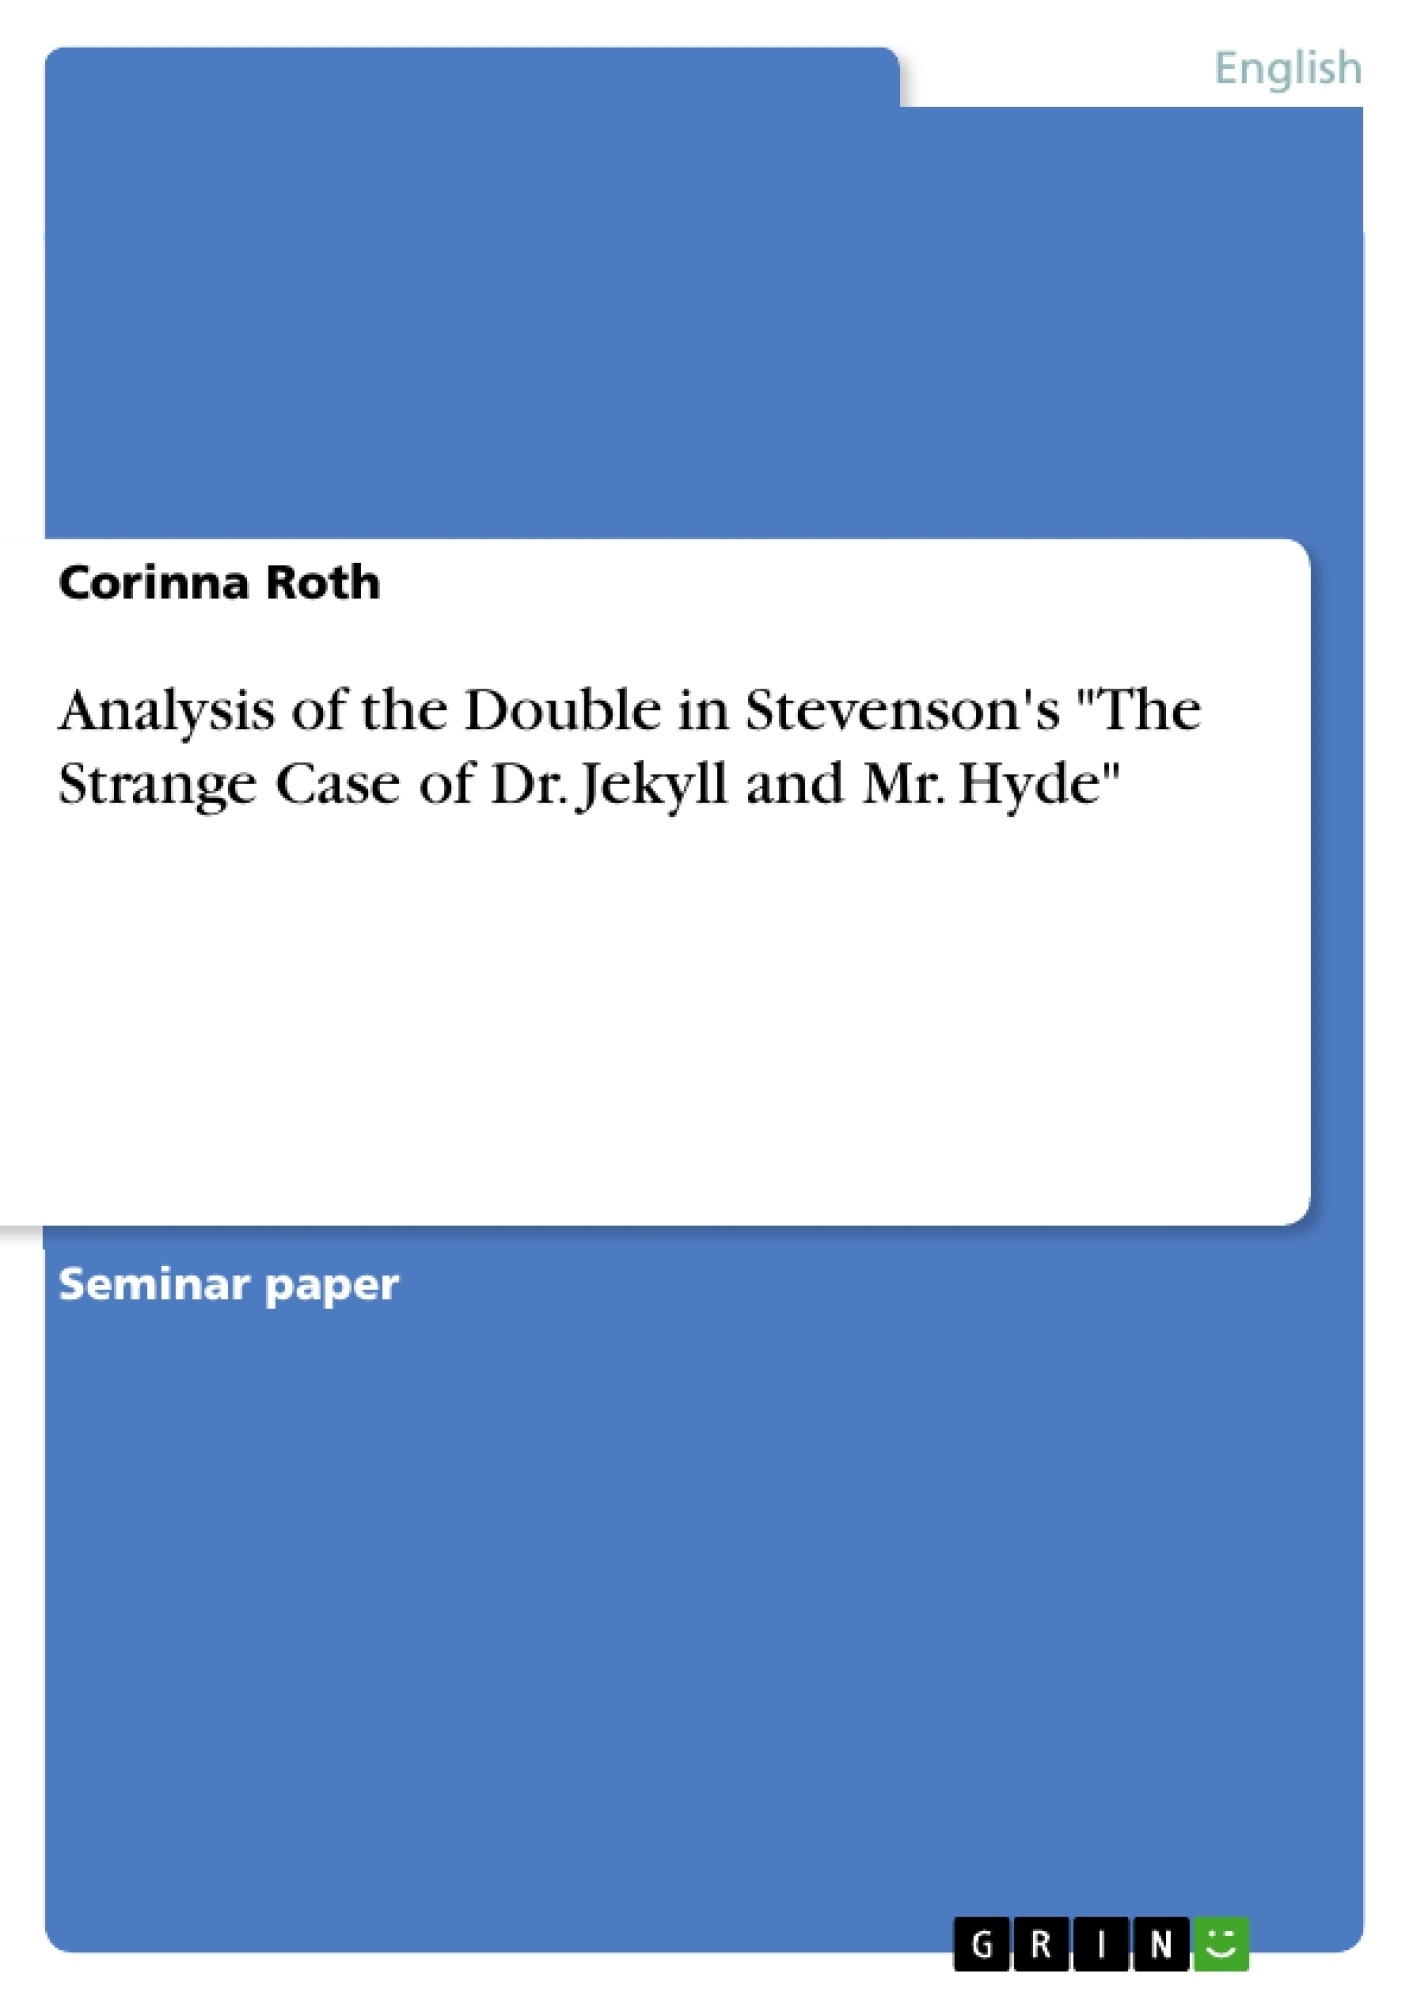 Thesis for dr jekyll and mr hyde